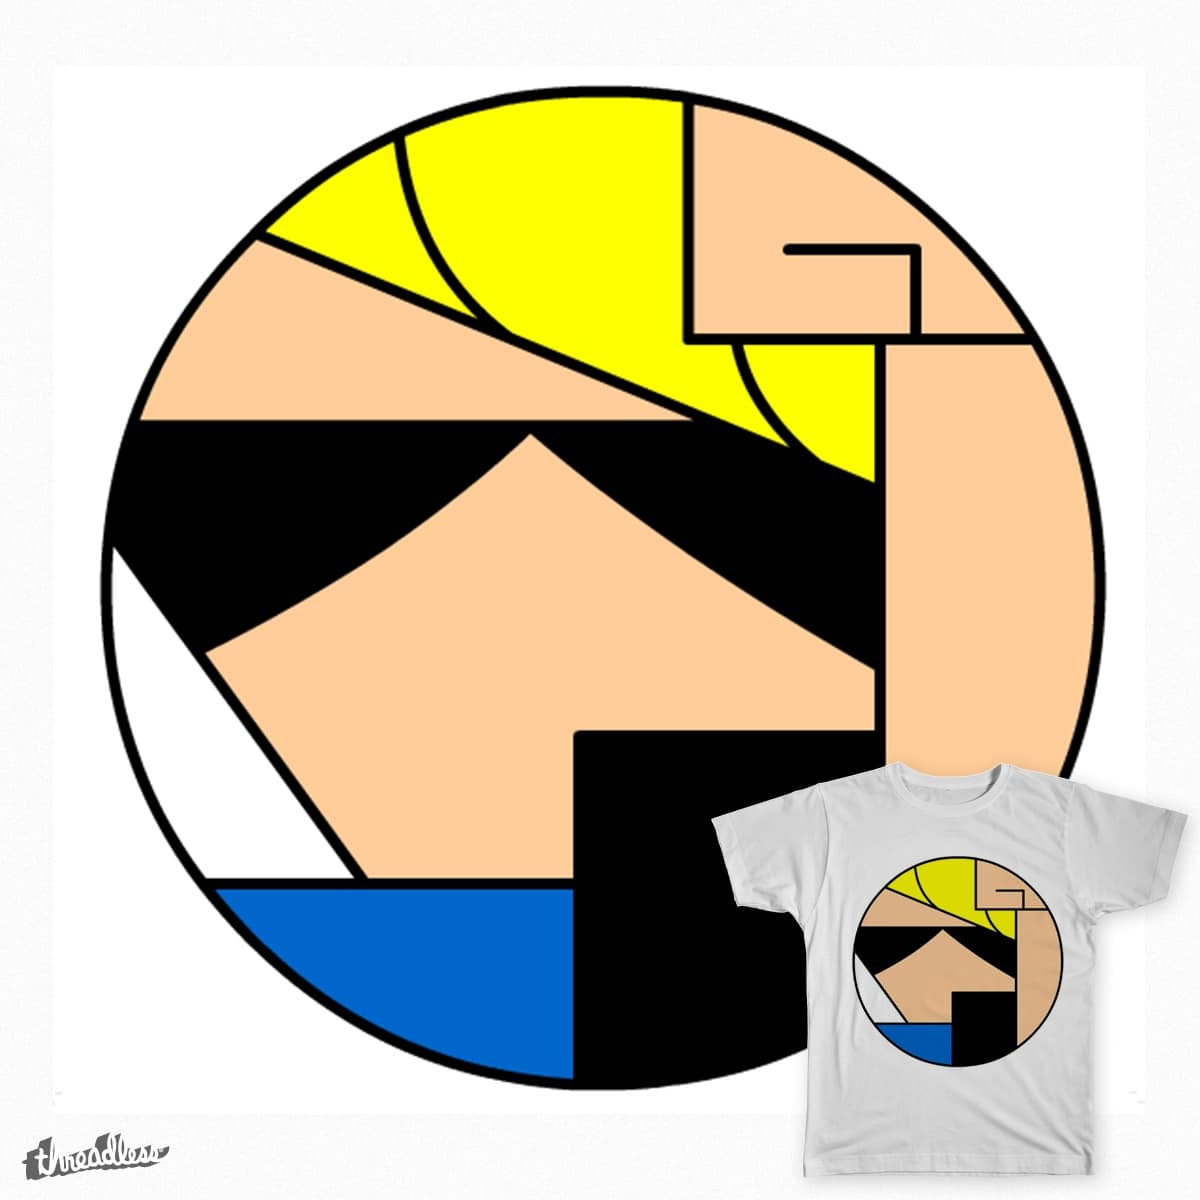 Johnny Bravo - Cartoon Circle by Birdstick on Threadless